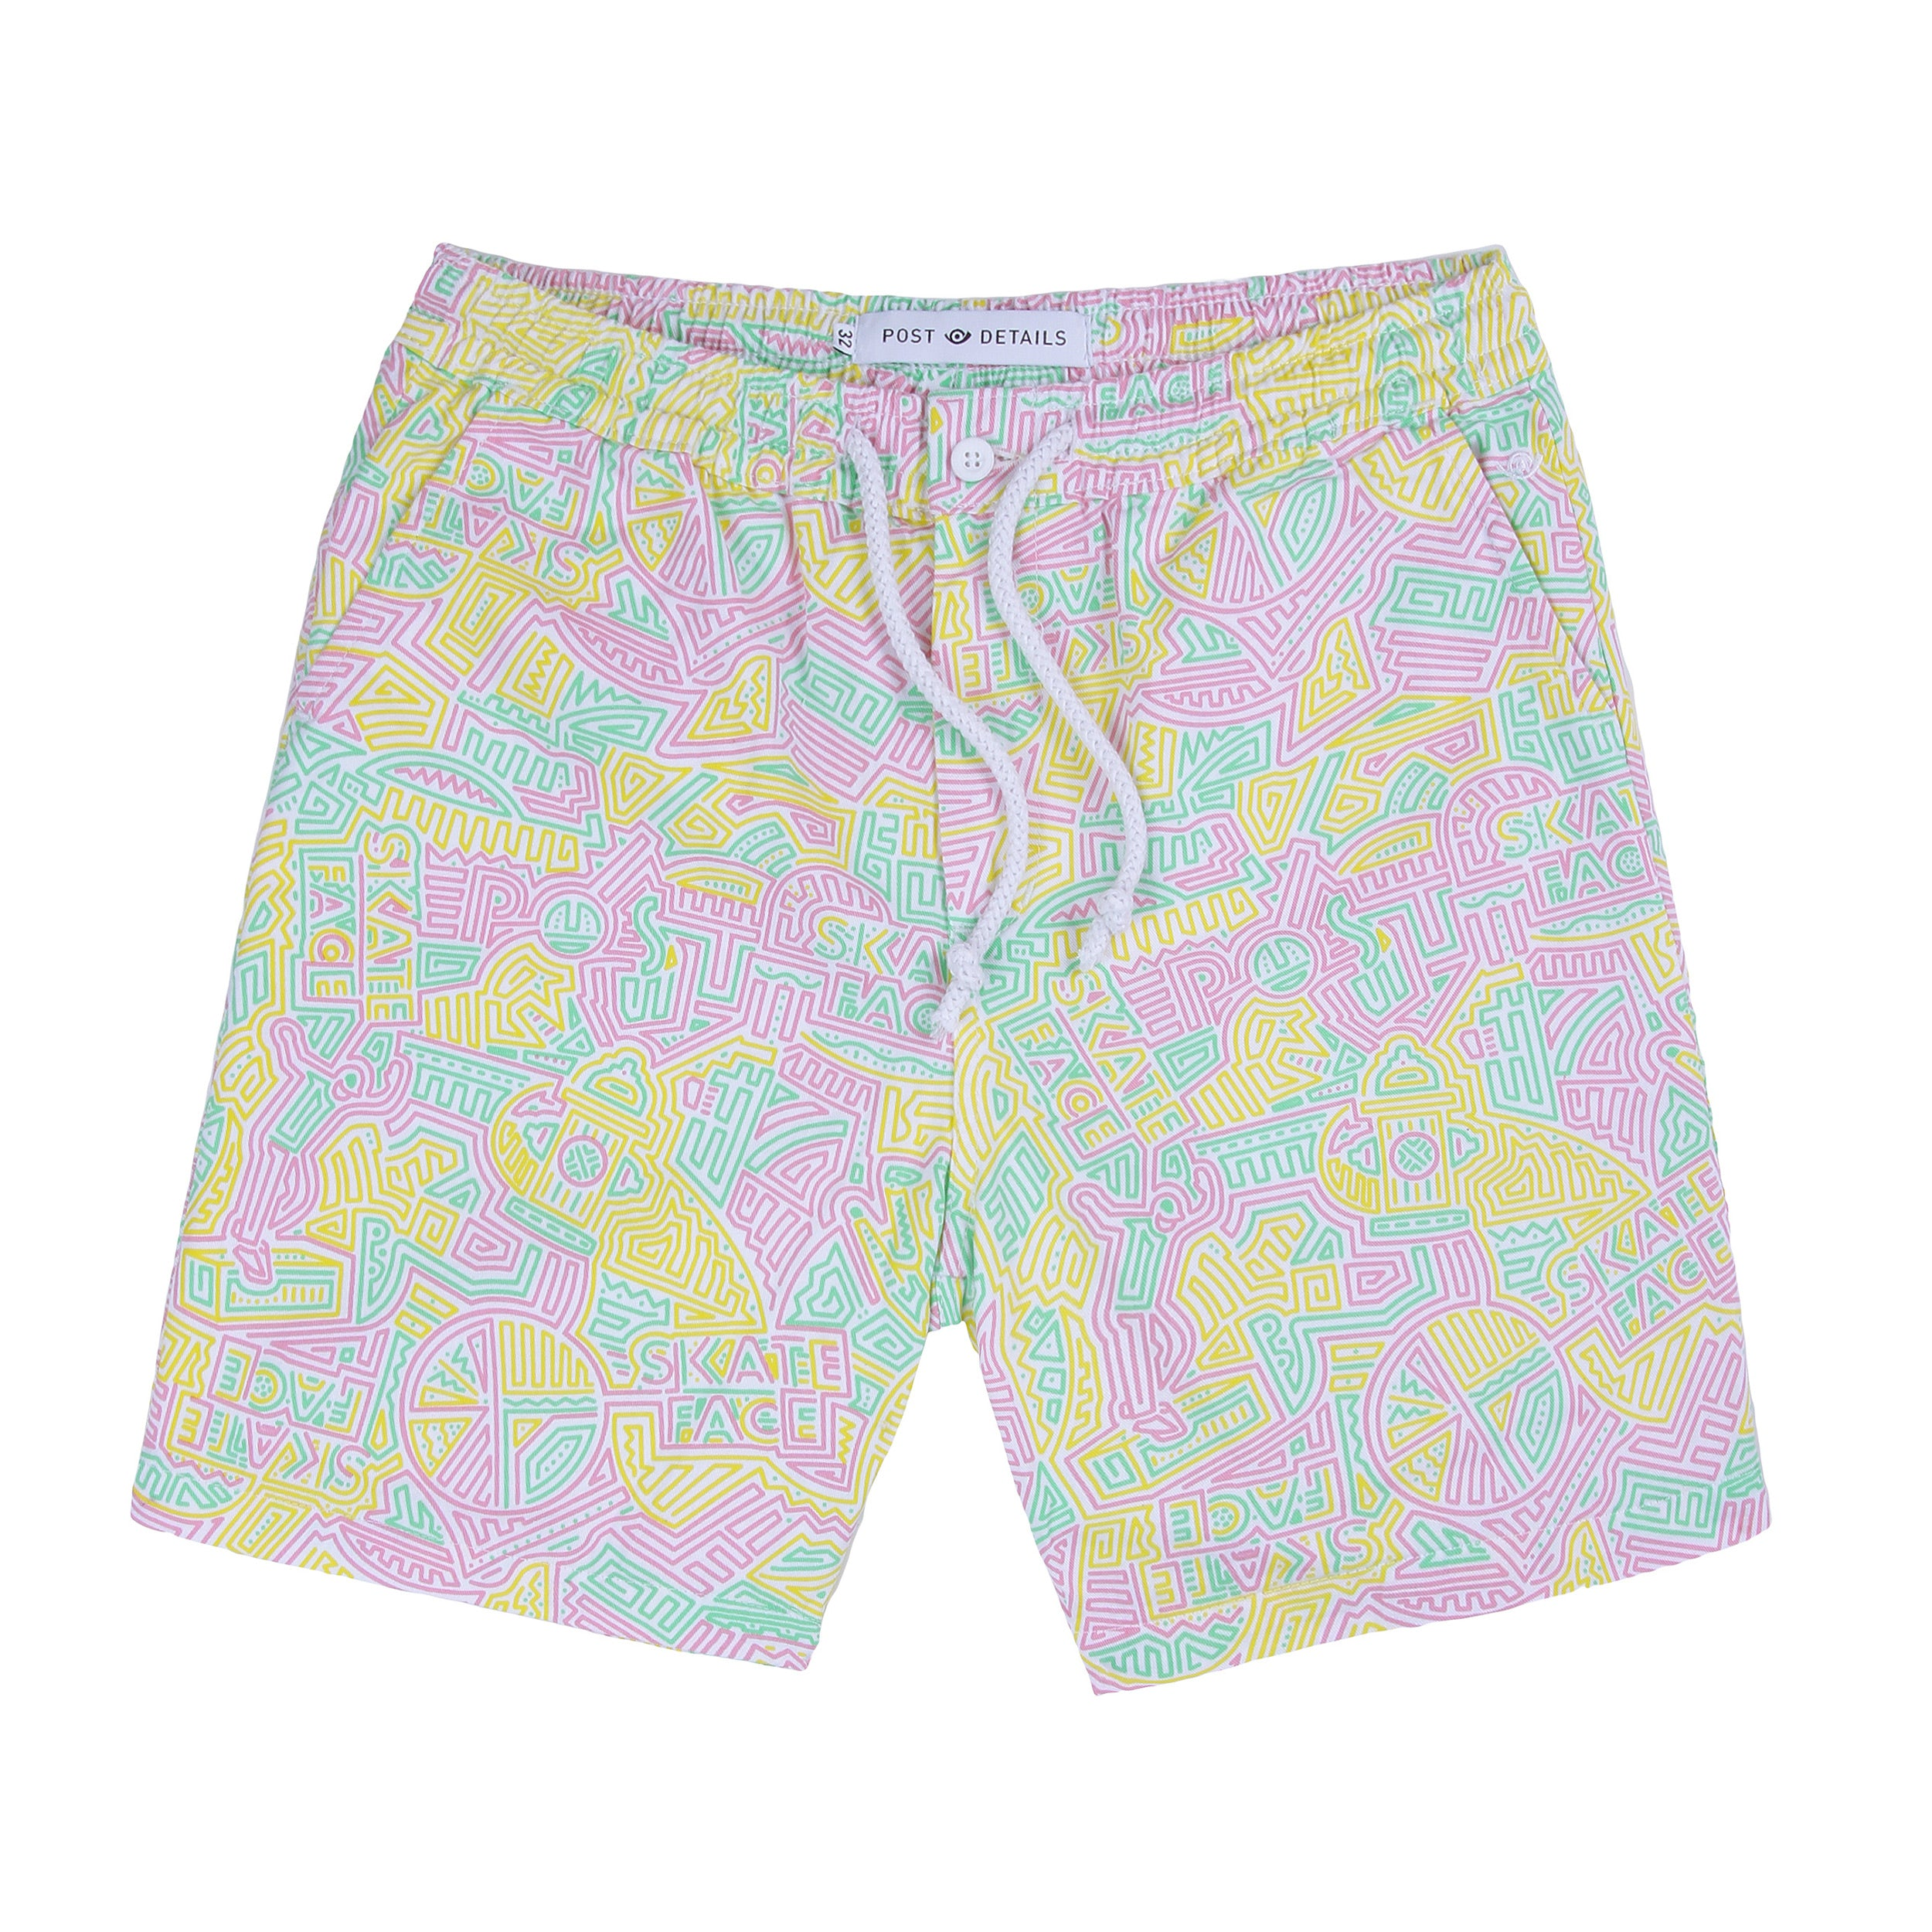 Post Skate Face Leisure Shorts Multicolor